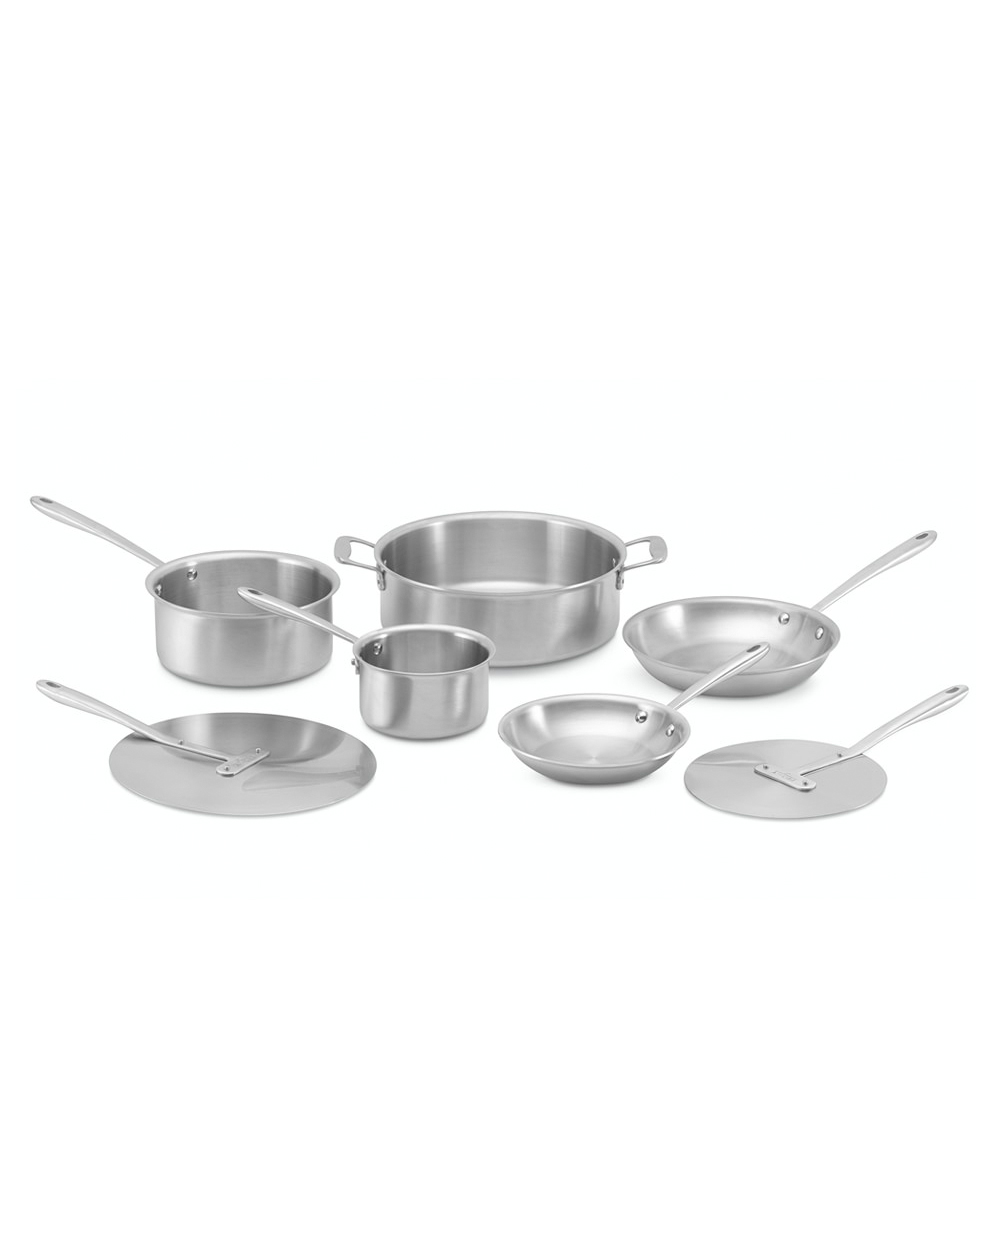 martha-bride-registry-tiler-peck-all-clad-pots-and-pans-cookware-0515.jpg